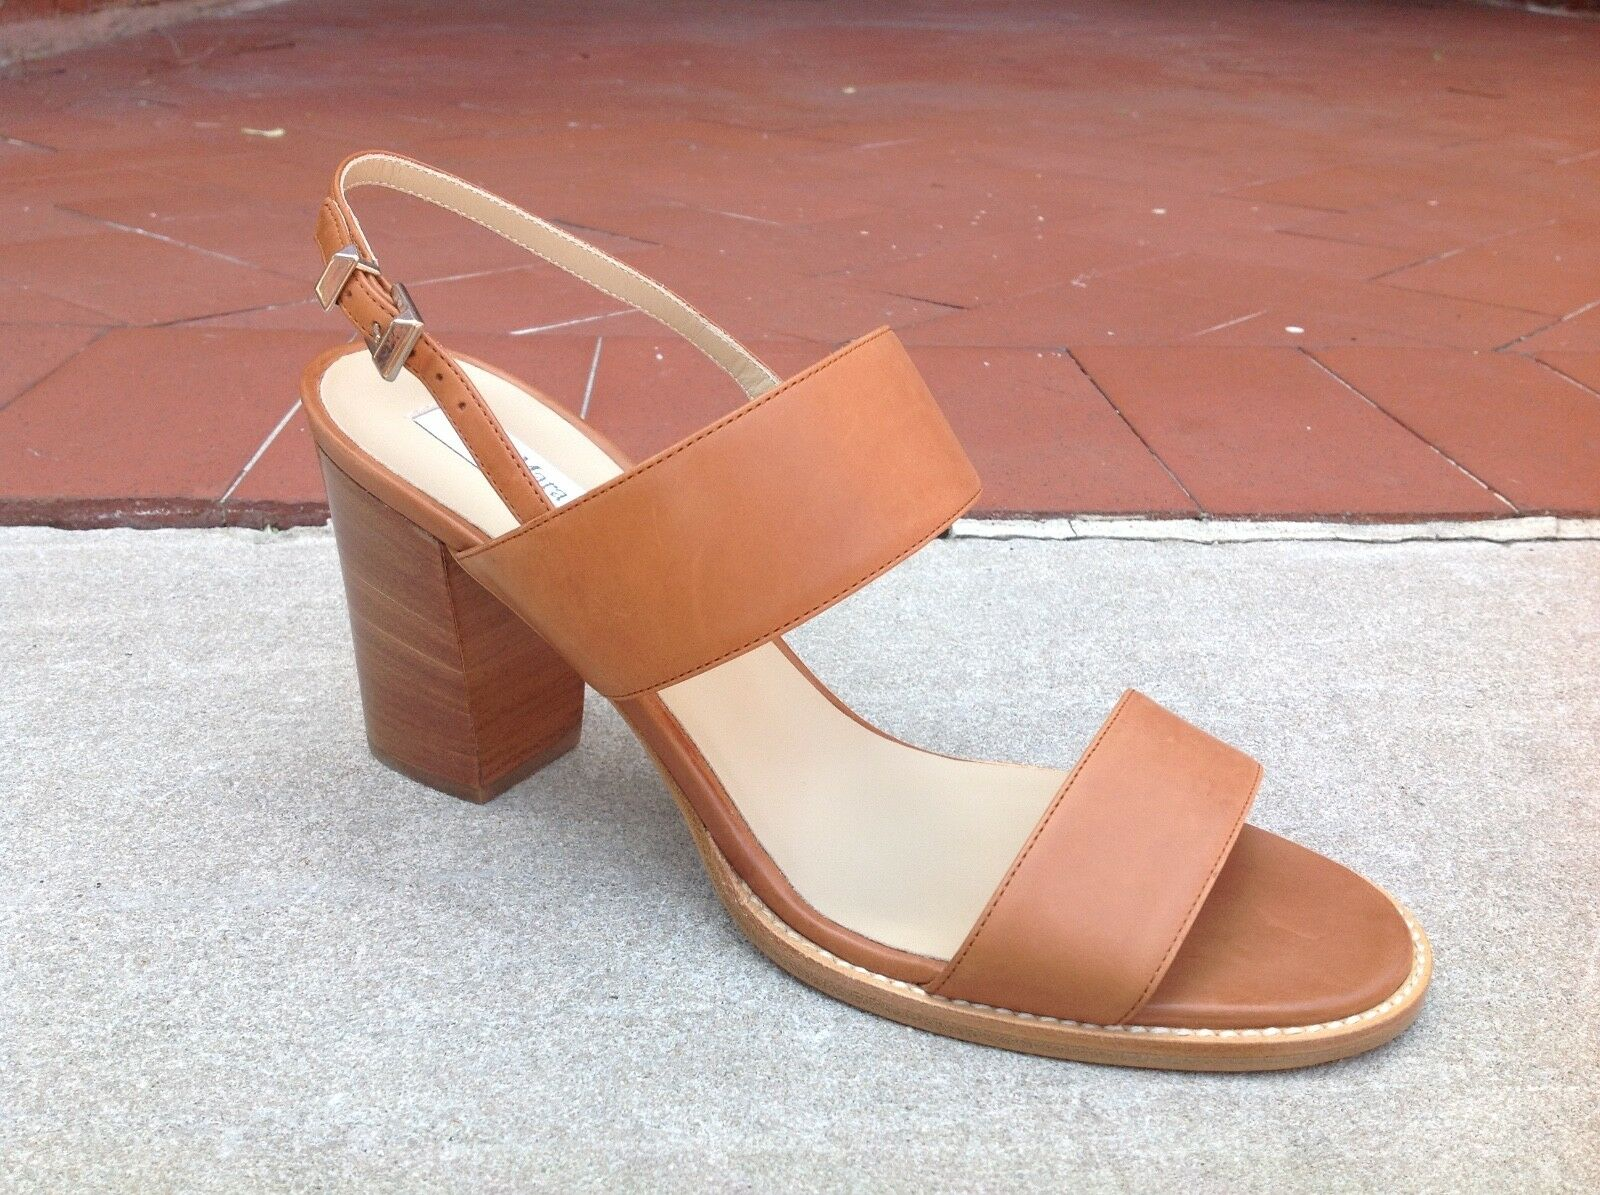 495   Max Mara Women's Sandals shoes Size 9 (39) Tan Leather Stappy Heels NEW